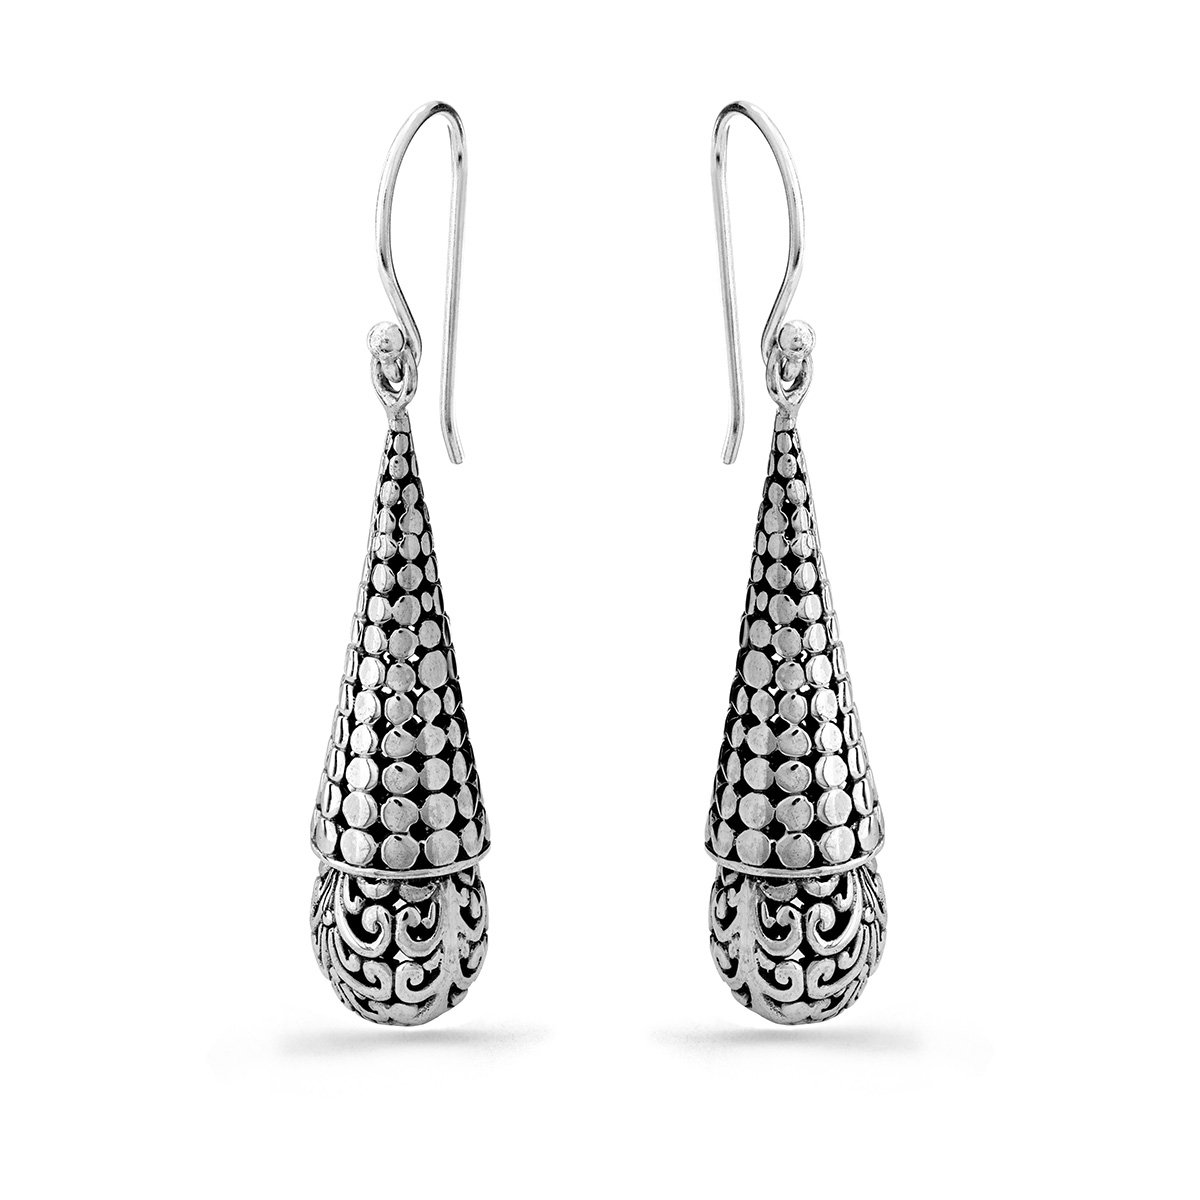 Gajah Silver Earrings